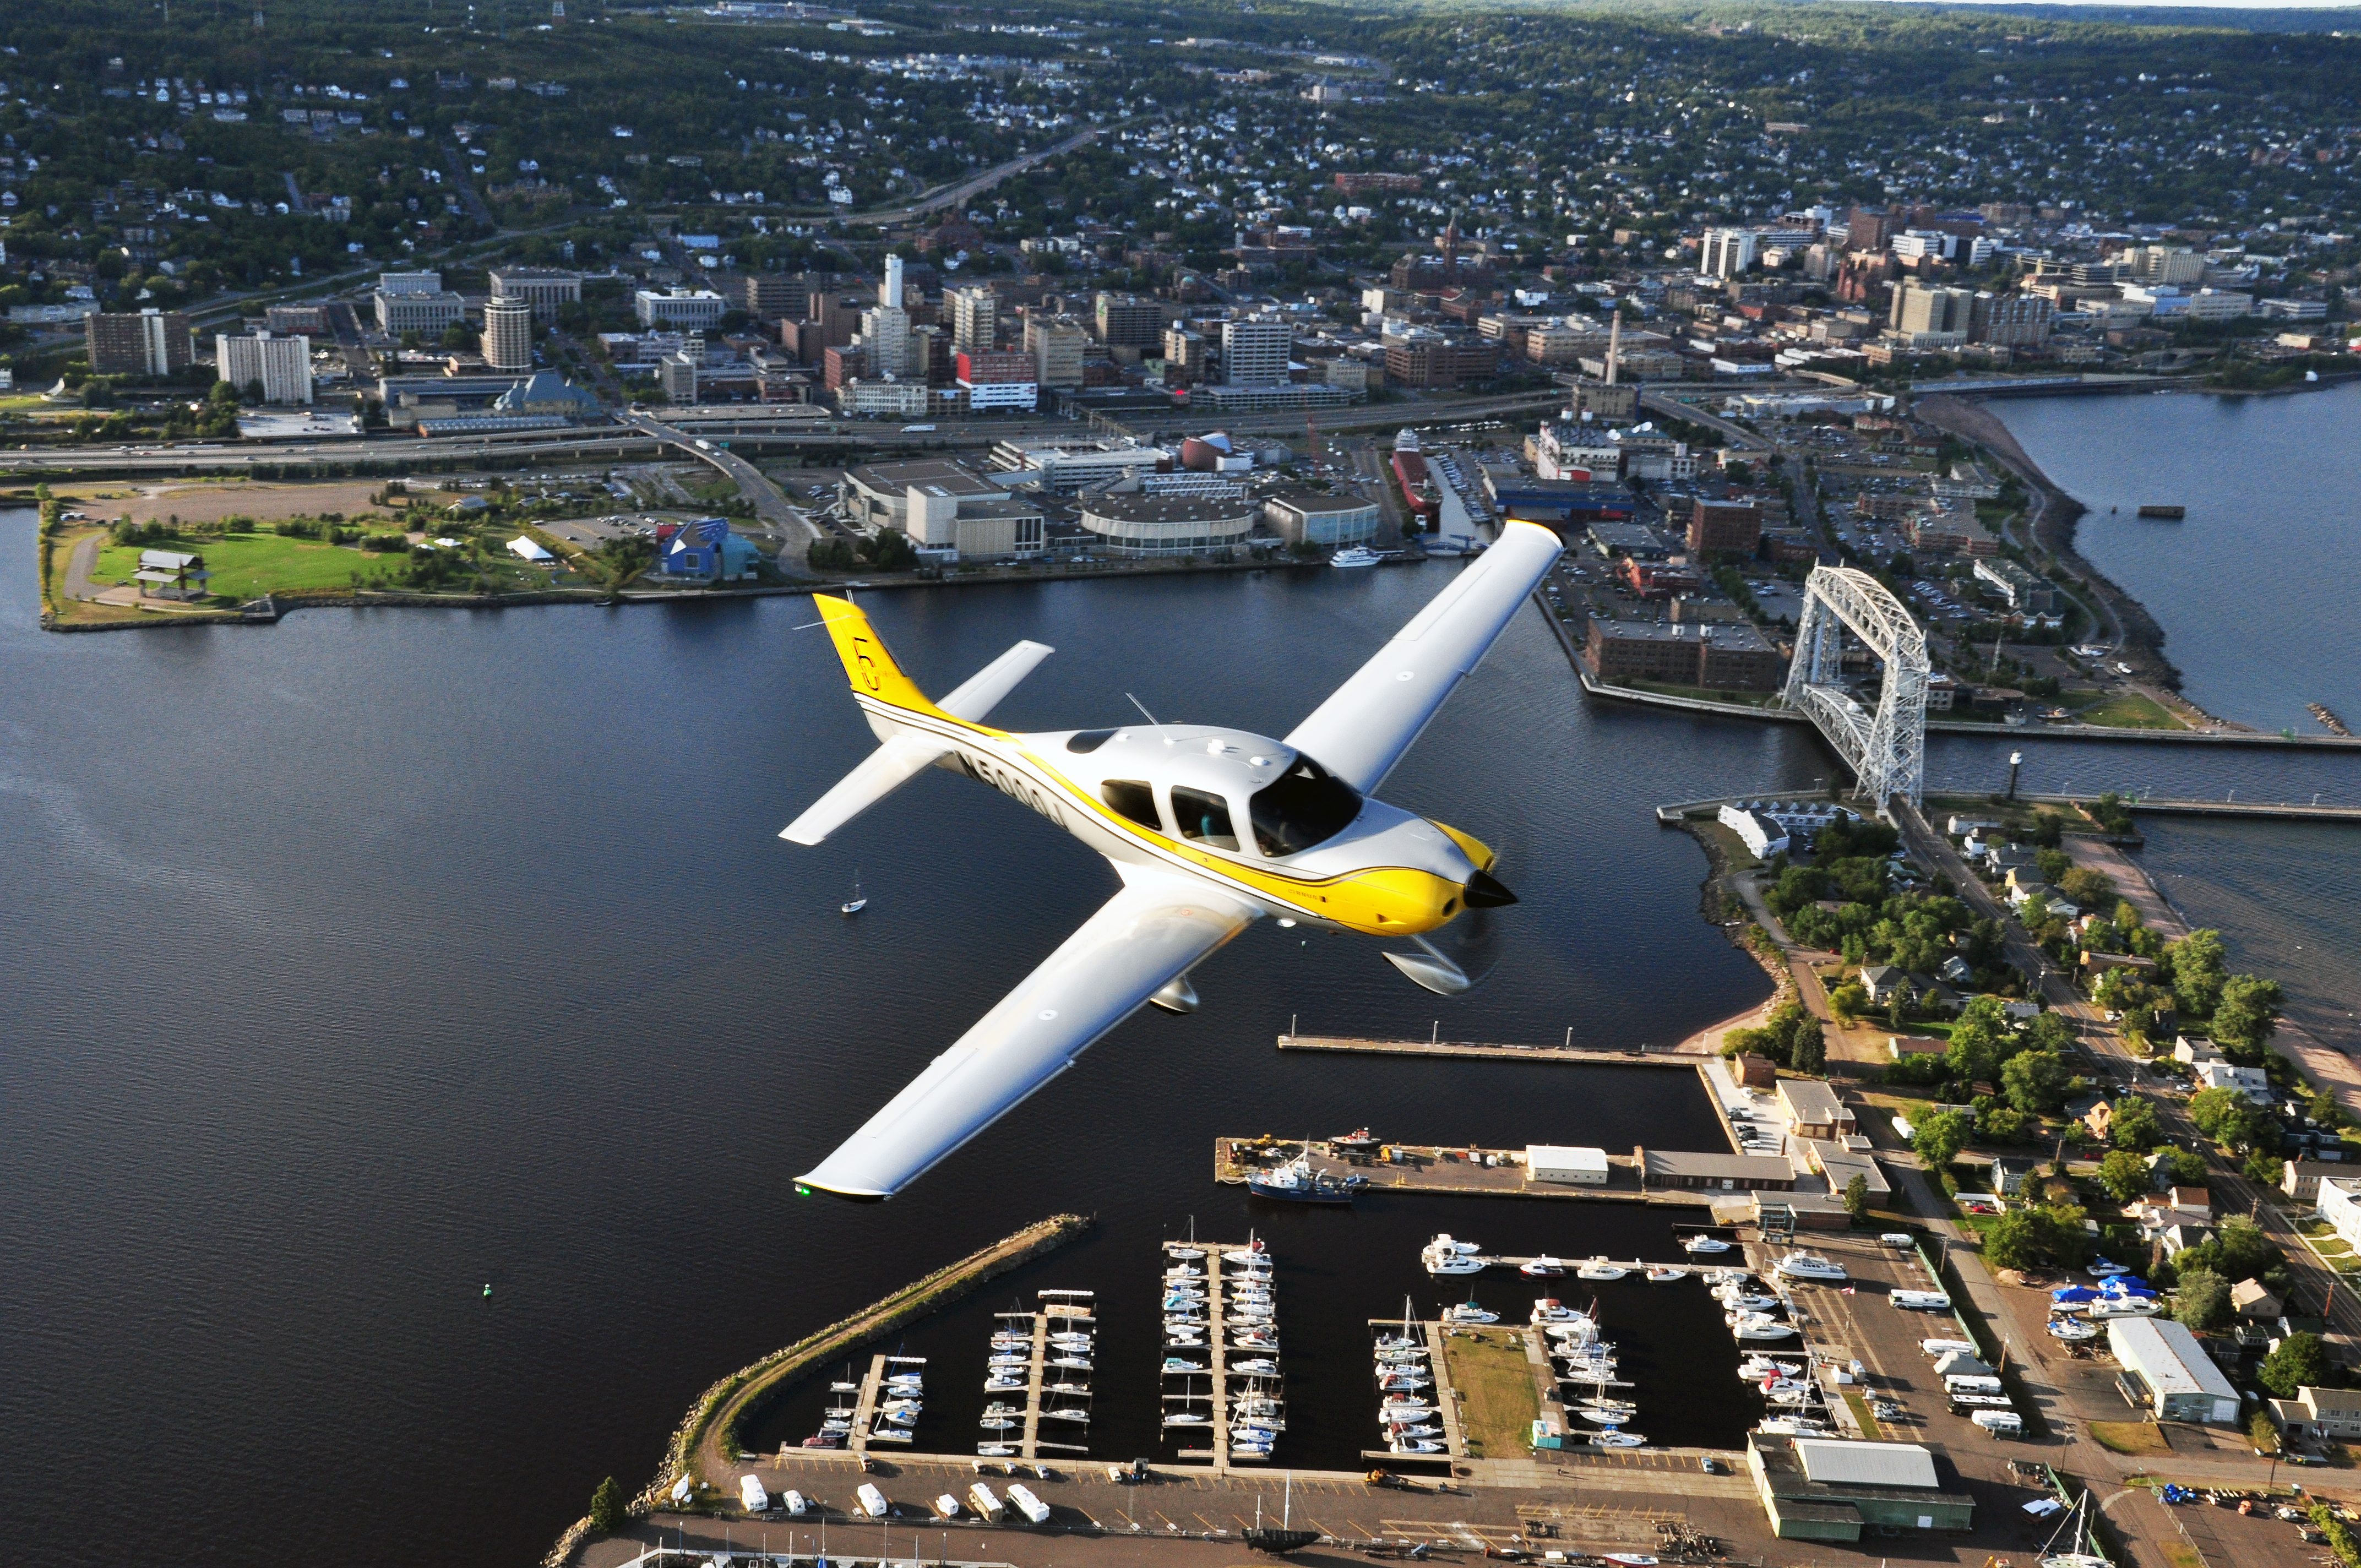 A Cirrus flies over the marina at north end of Minnesota Point. The aerial lift bridge connects Minnesota Point to Canal Park, and, beyond it, Duluth proper. Visitors can tour the Duluth Cirrus factory and see production of all three piston lines, plus the new Vision jet. Photo courtesy Cirrus Aircraft.